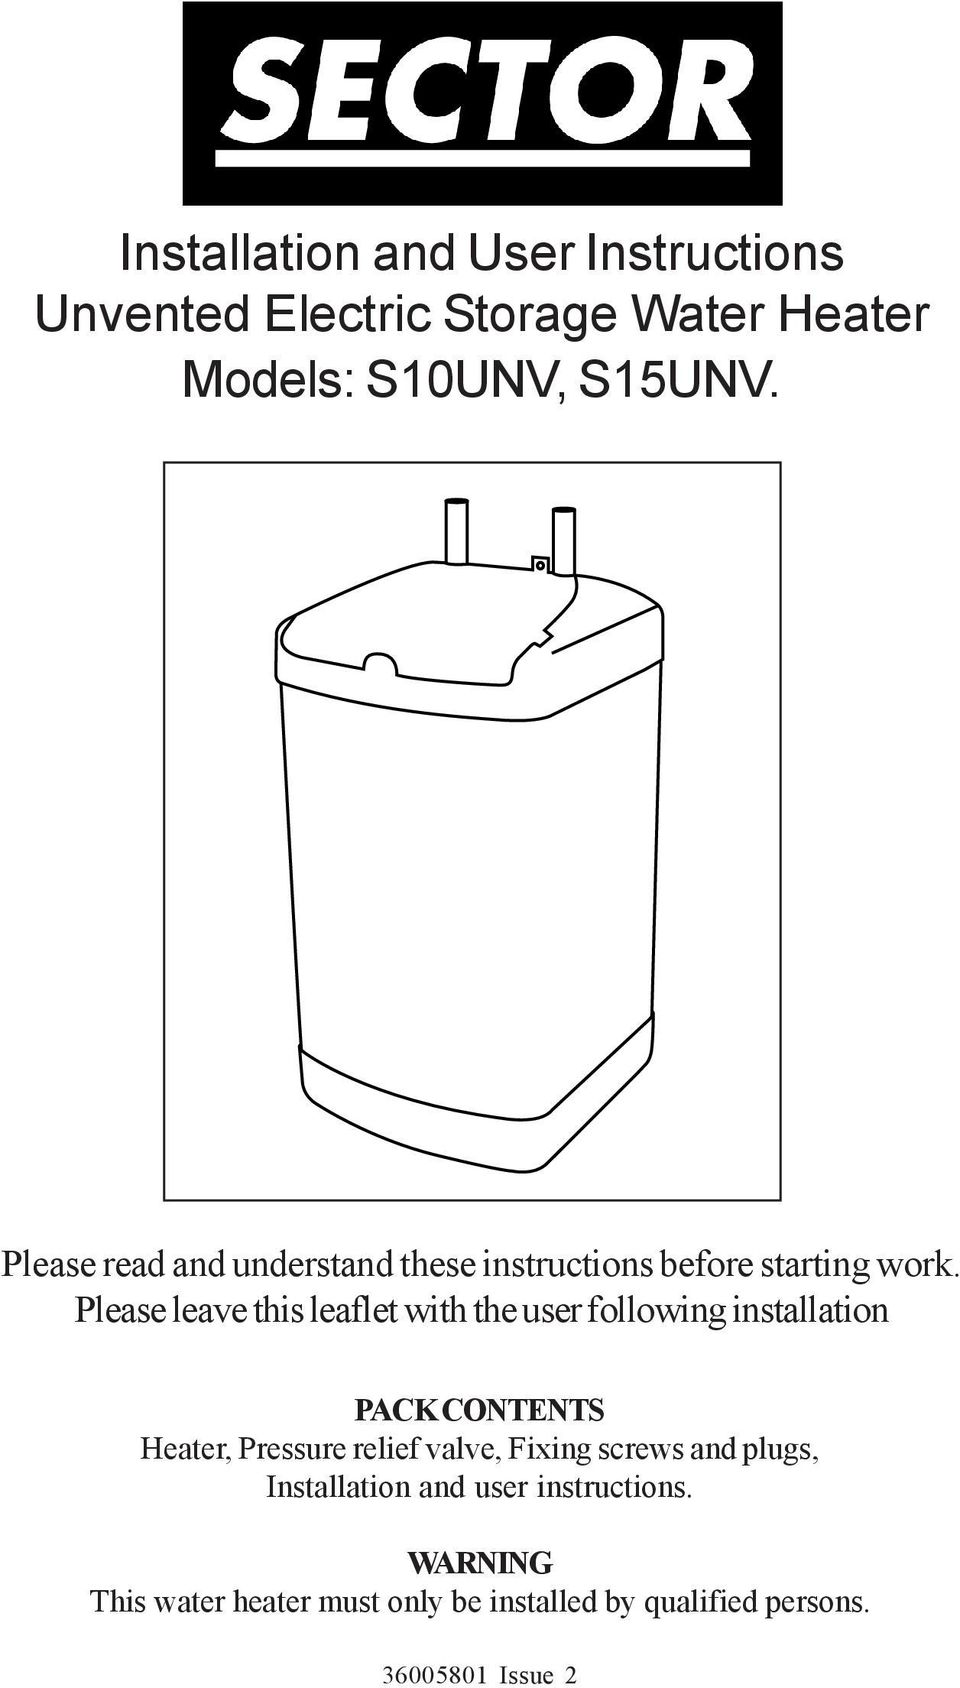 Installation And User Instructions Unvented Electric Storage Water Immersion Heater Wiring Please Leave This Leaflet With The Following Pack Contents Pressure Relief Valve